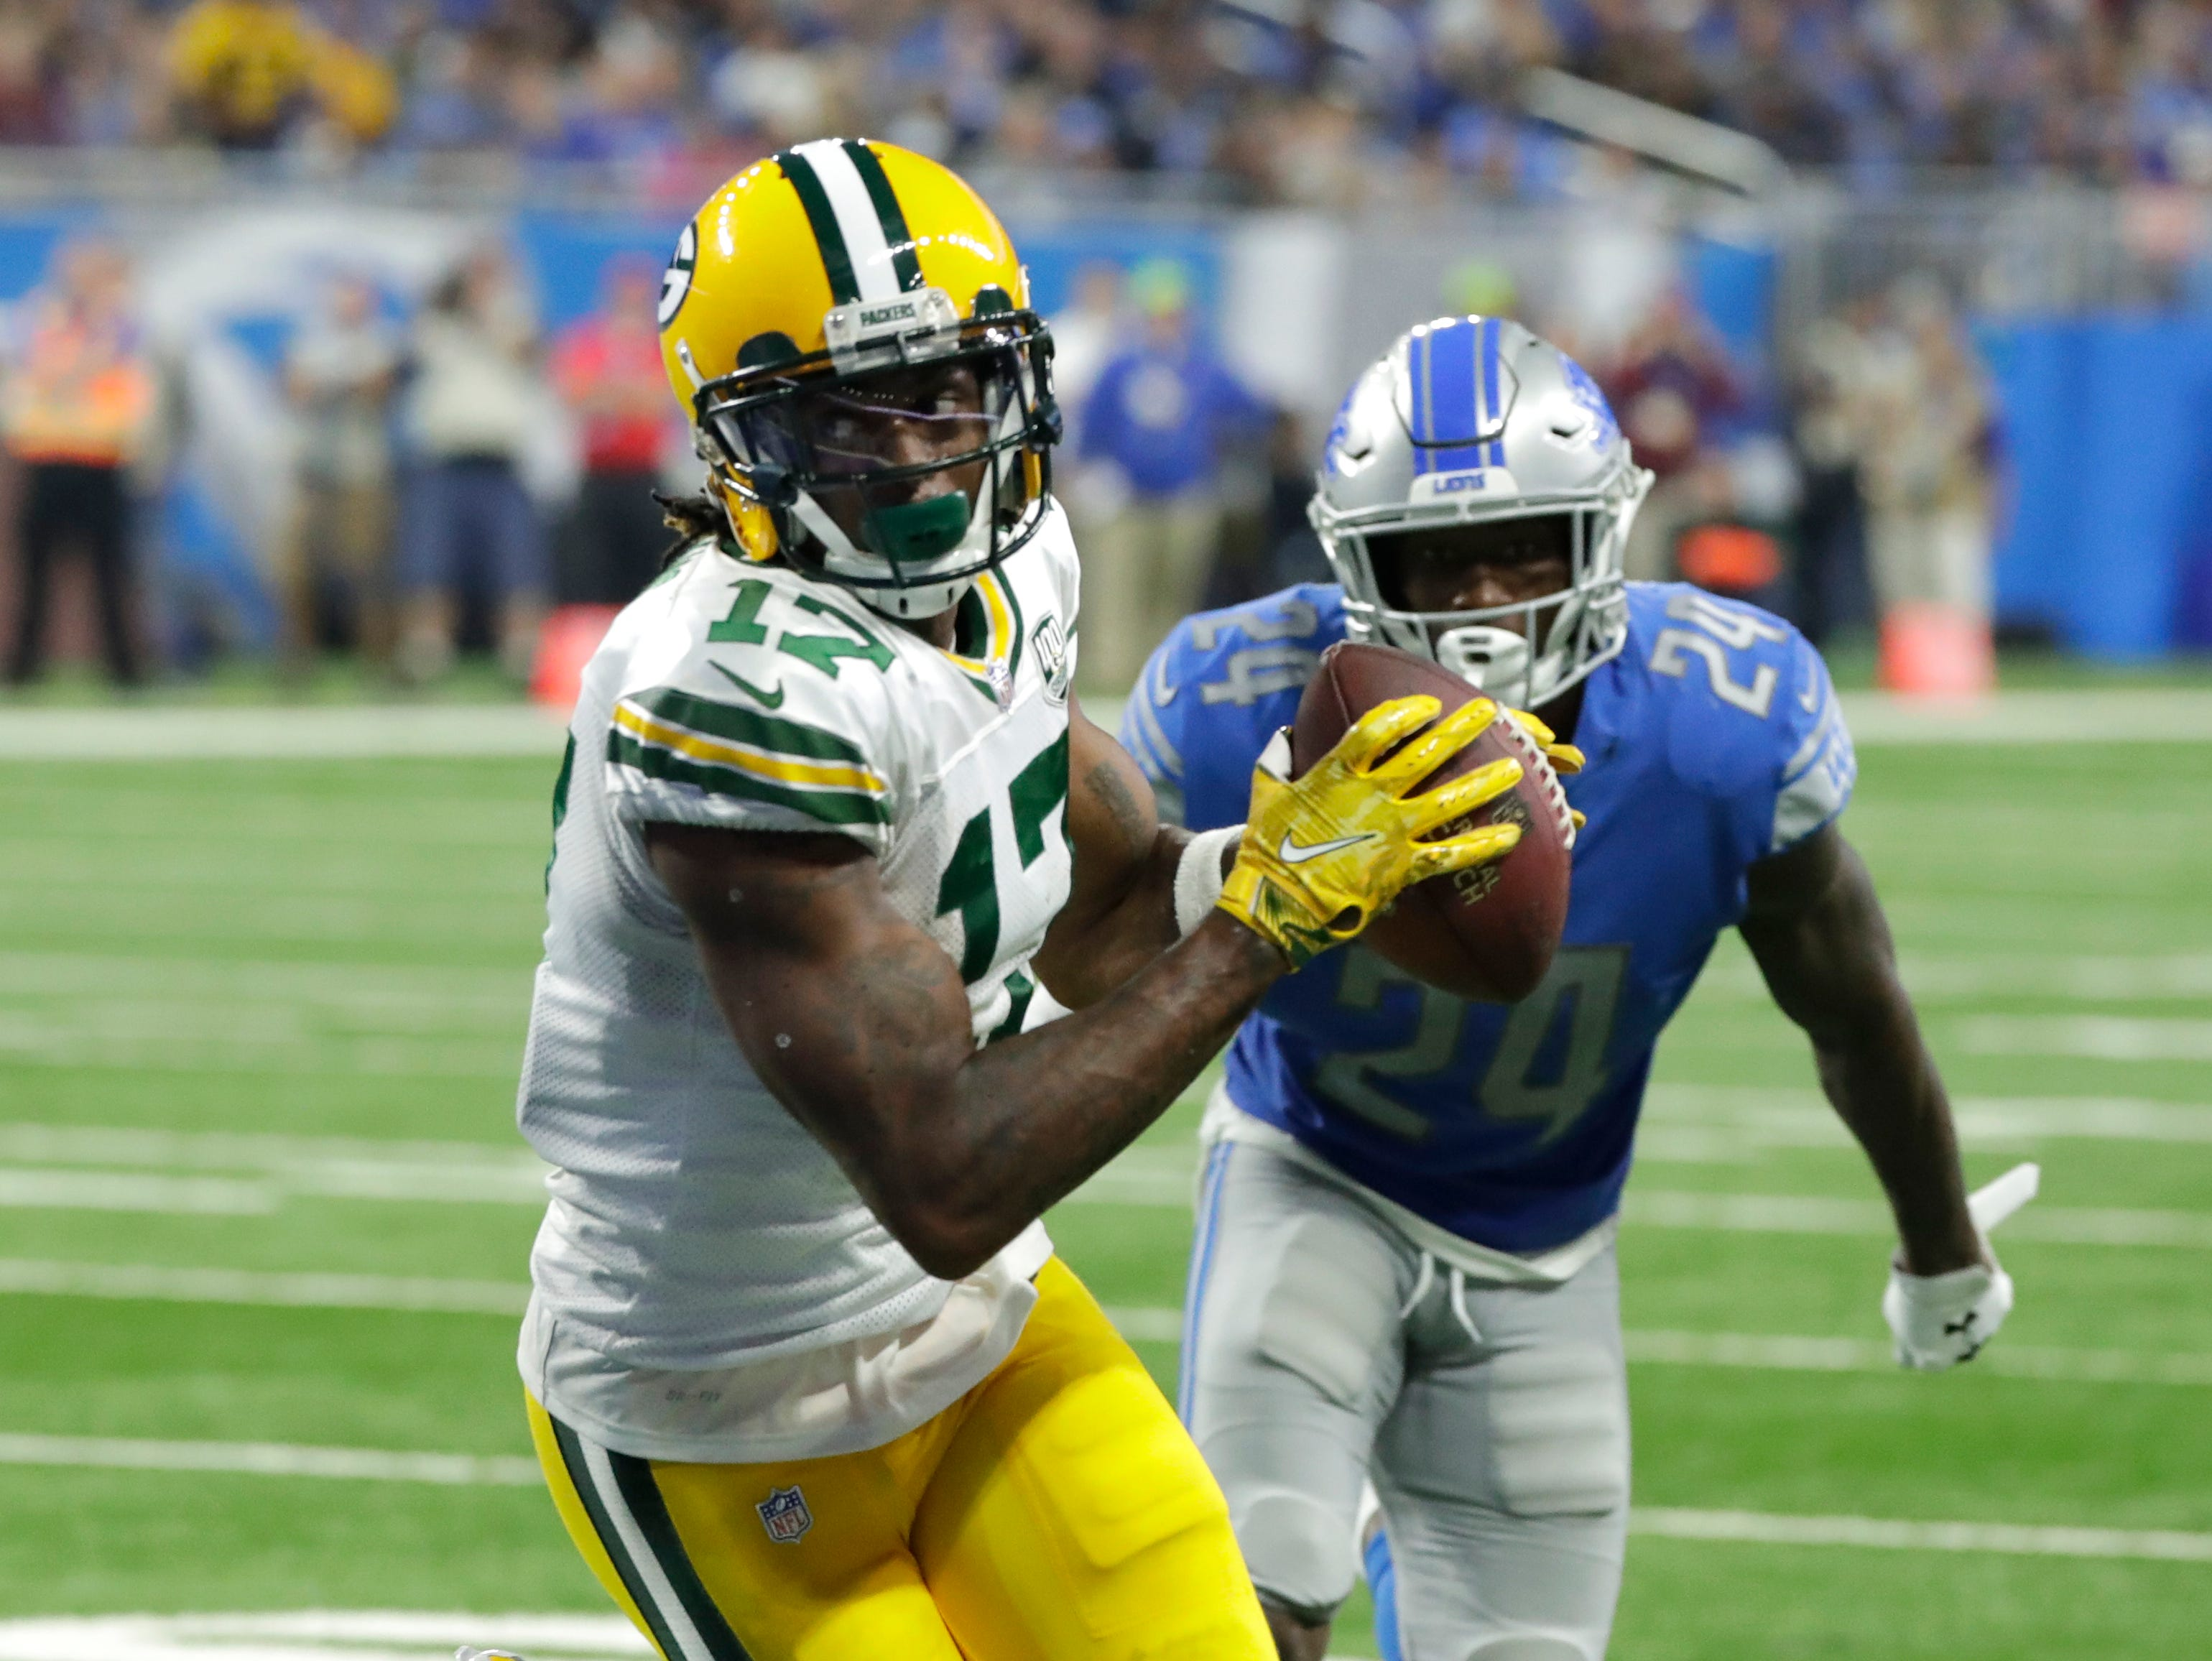 Green Bay Packers wide receiver Davante Adams (17) scores a touchdown in the second half during the Green Bay Packers 31-23 loss to the Detroit Lions at Ford Field, Detroit, Sunday, October 7, 2018.   Rick Wood/Milwaukee Journal Sentinel. USA